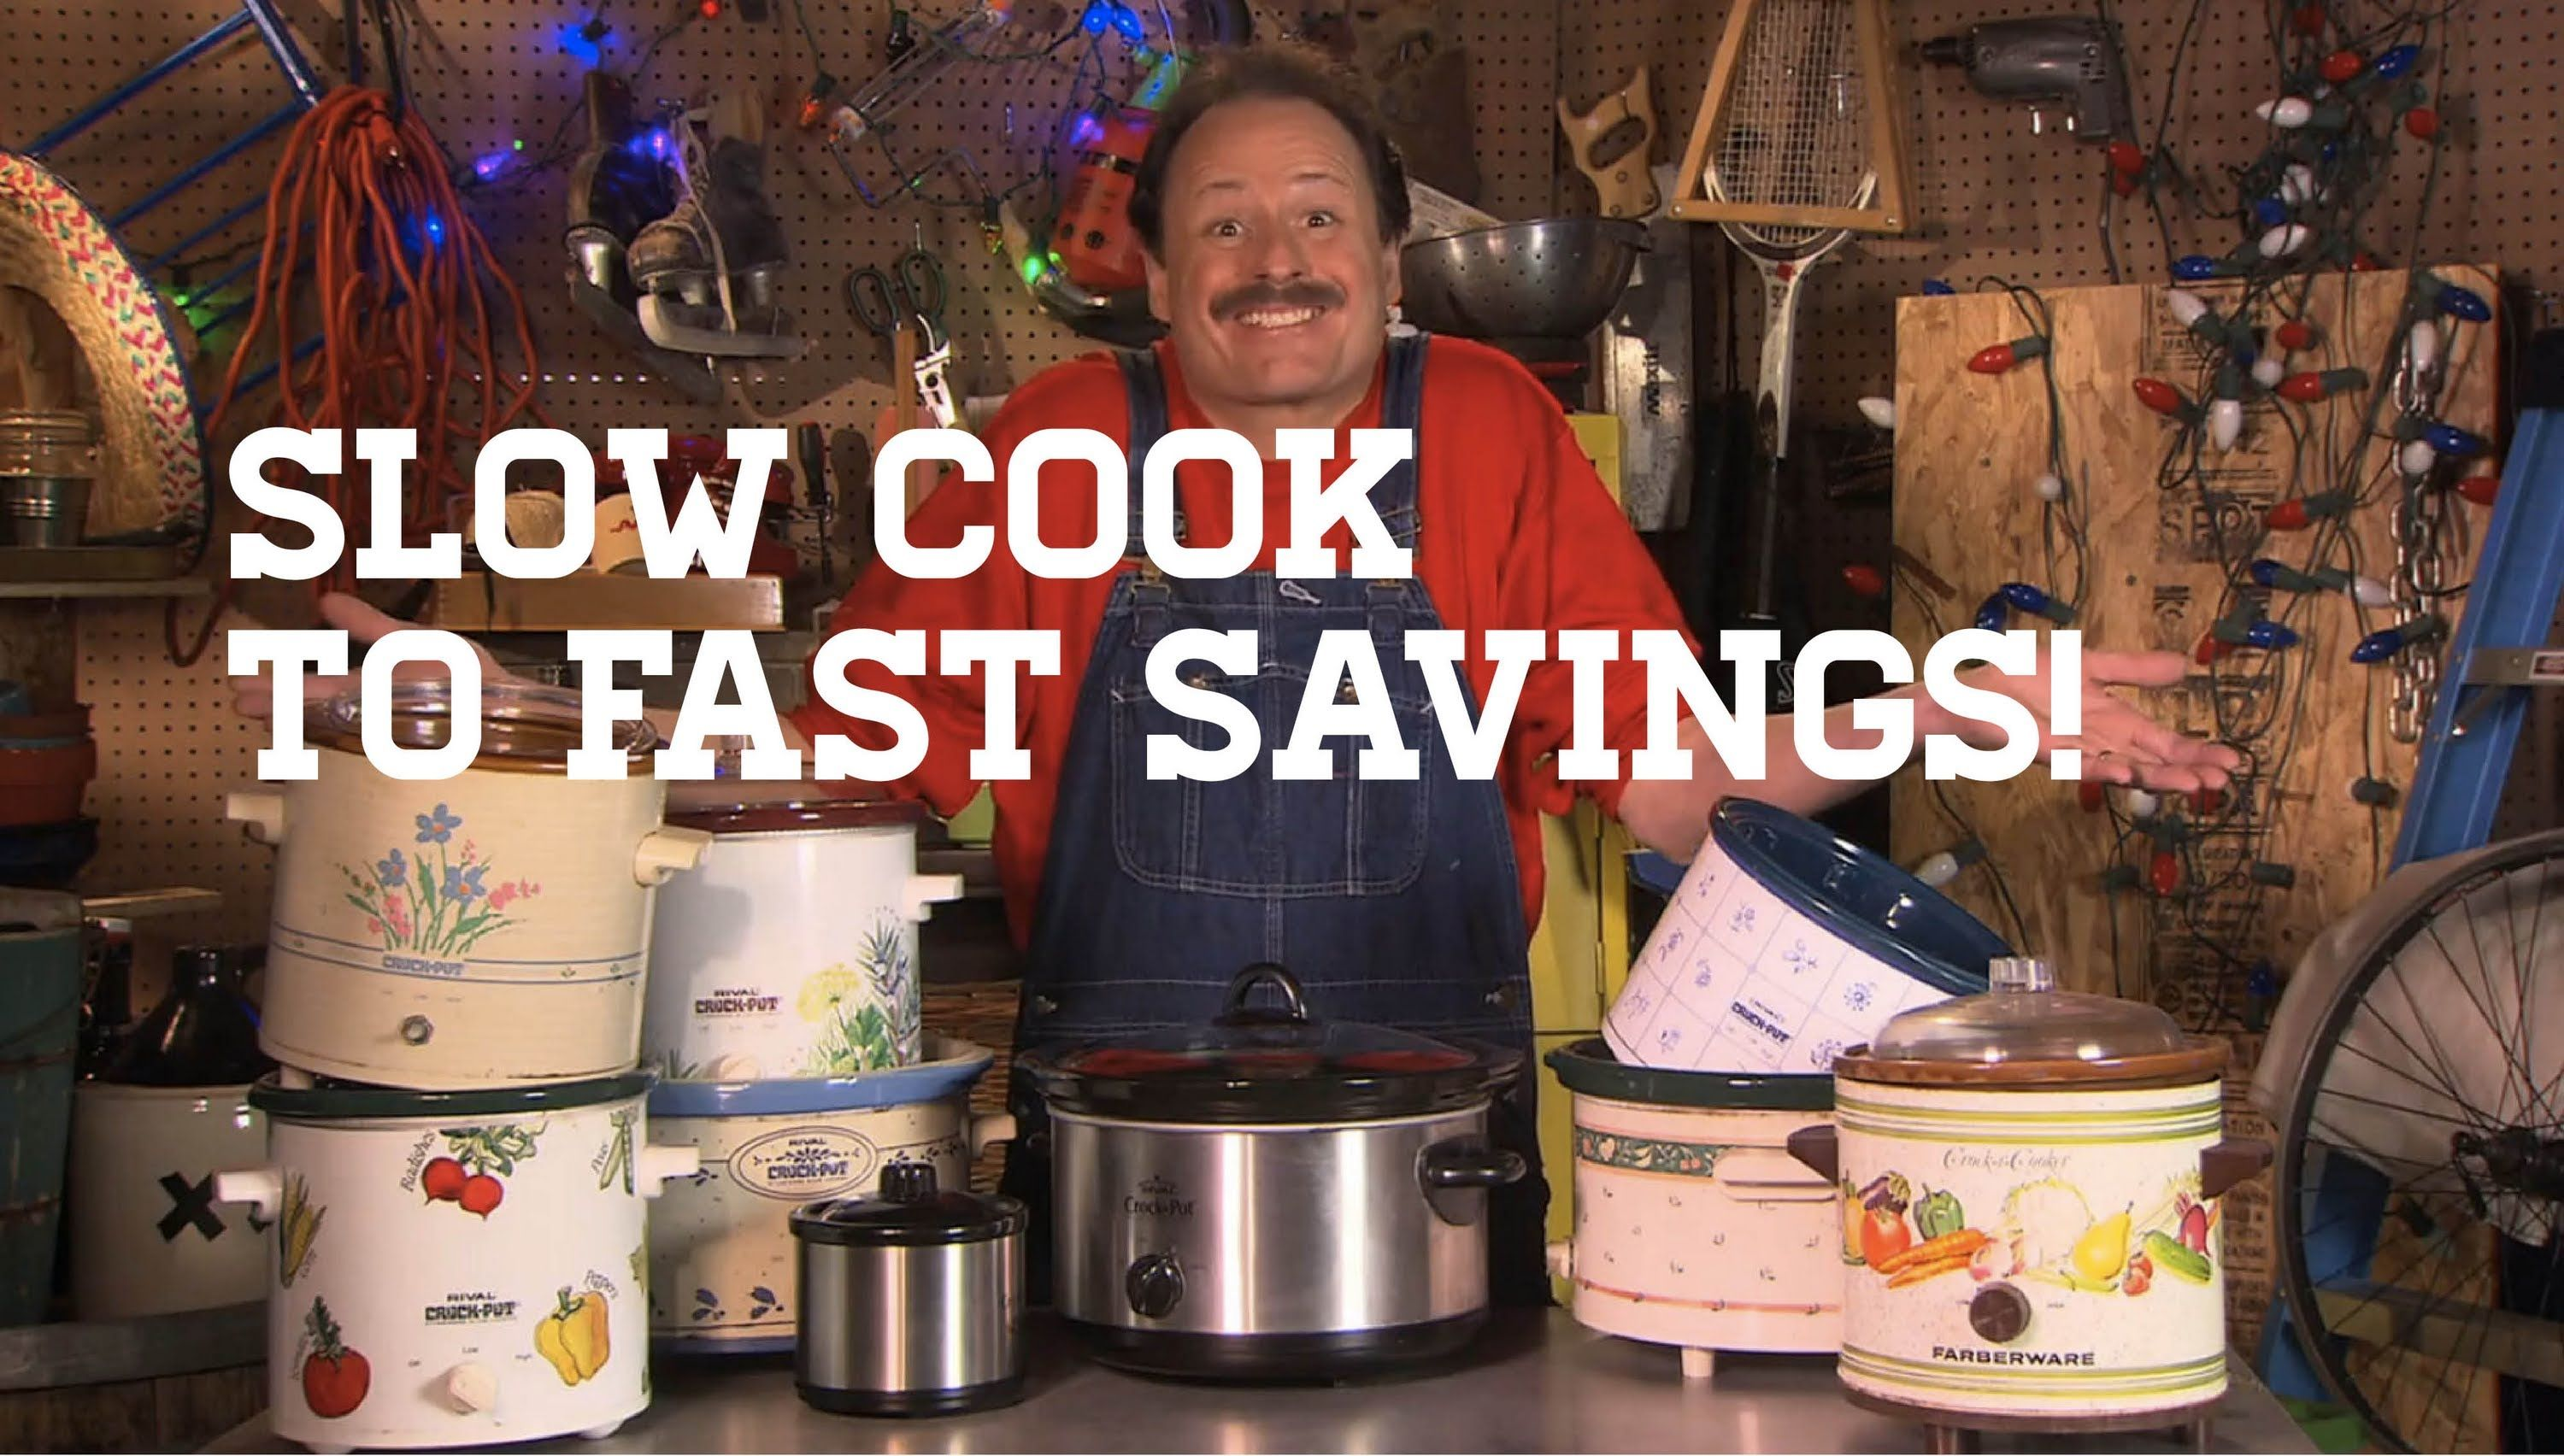 Crock Pot Crazed — The Cheap Life with Jeff Yeager, via YouTube.